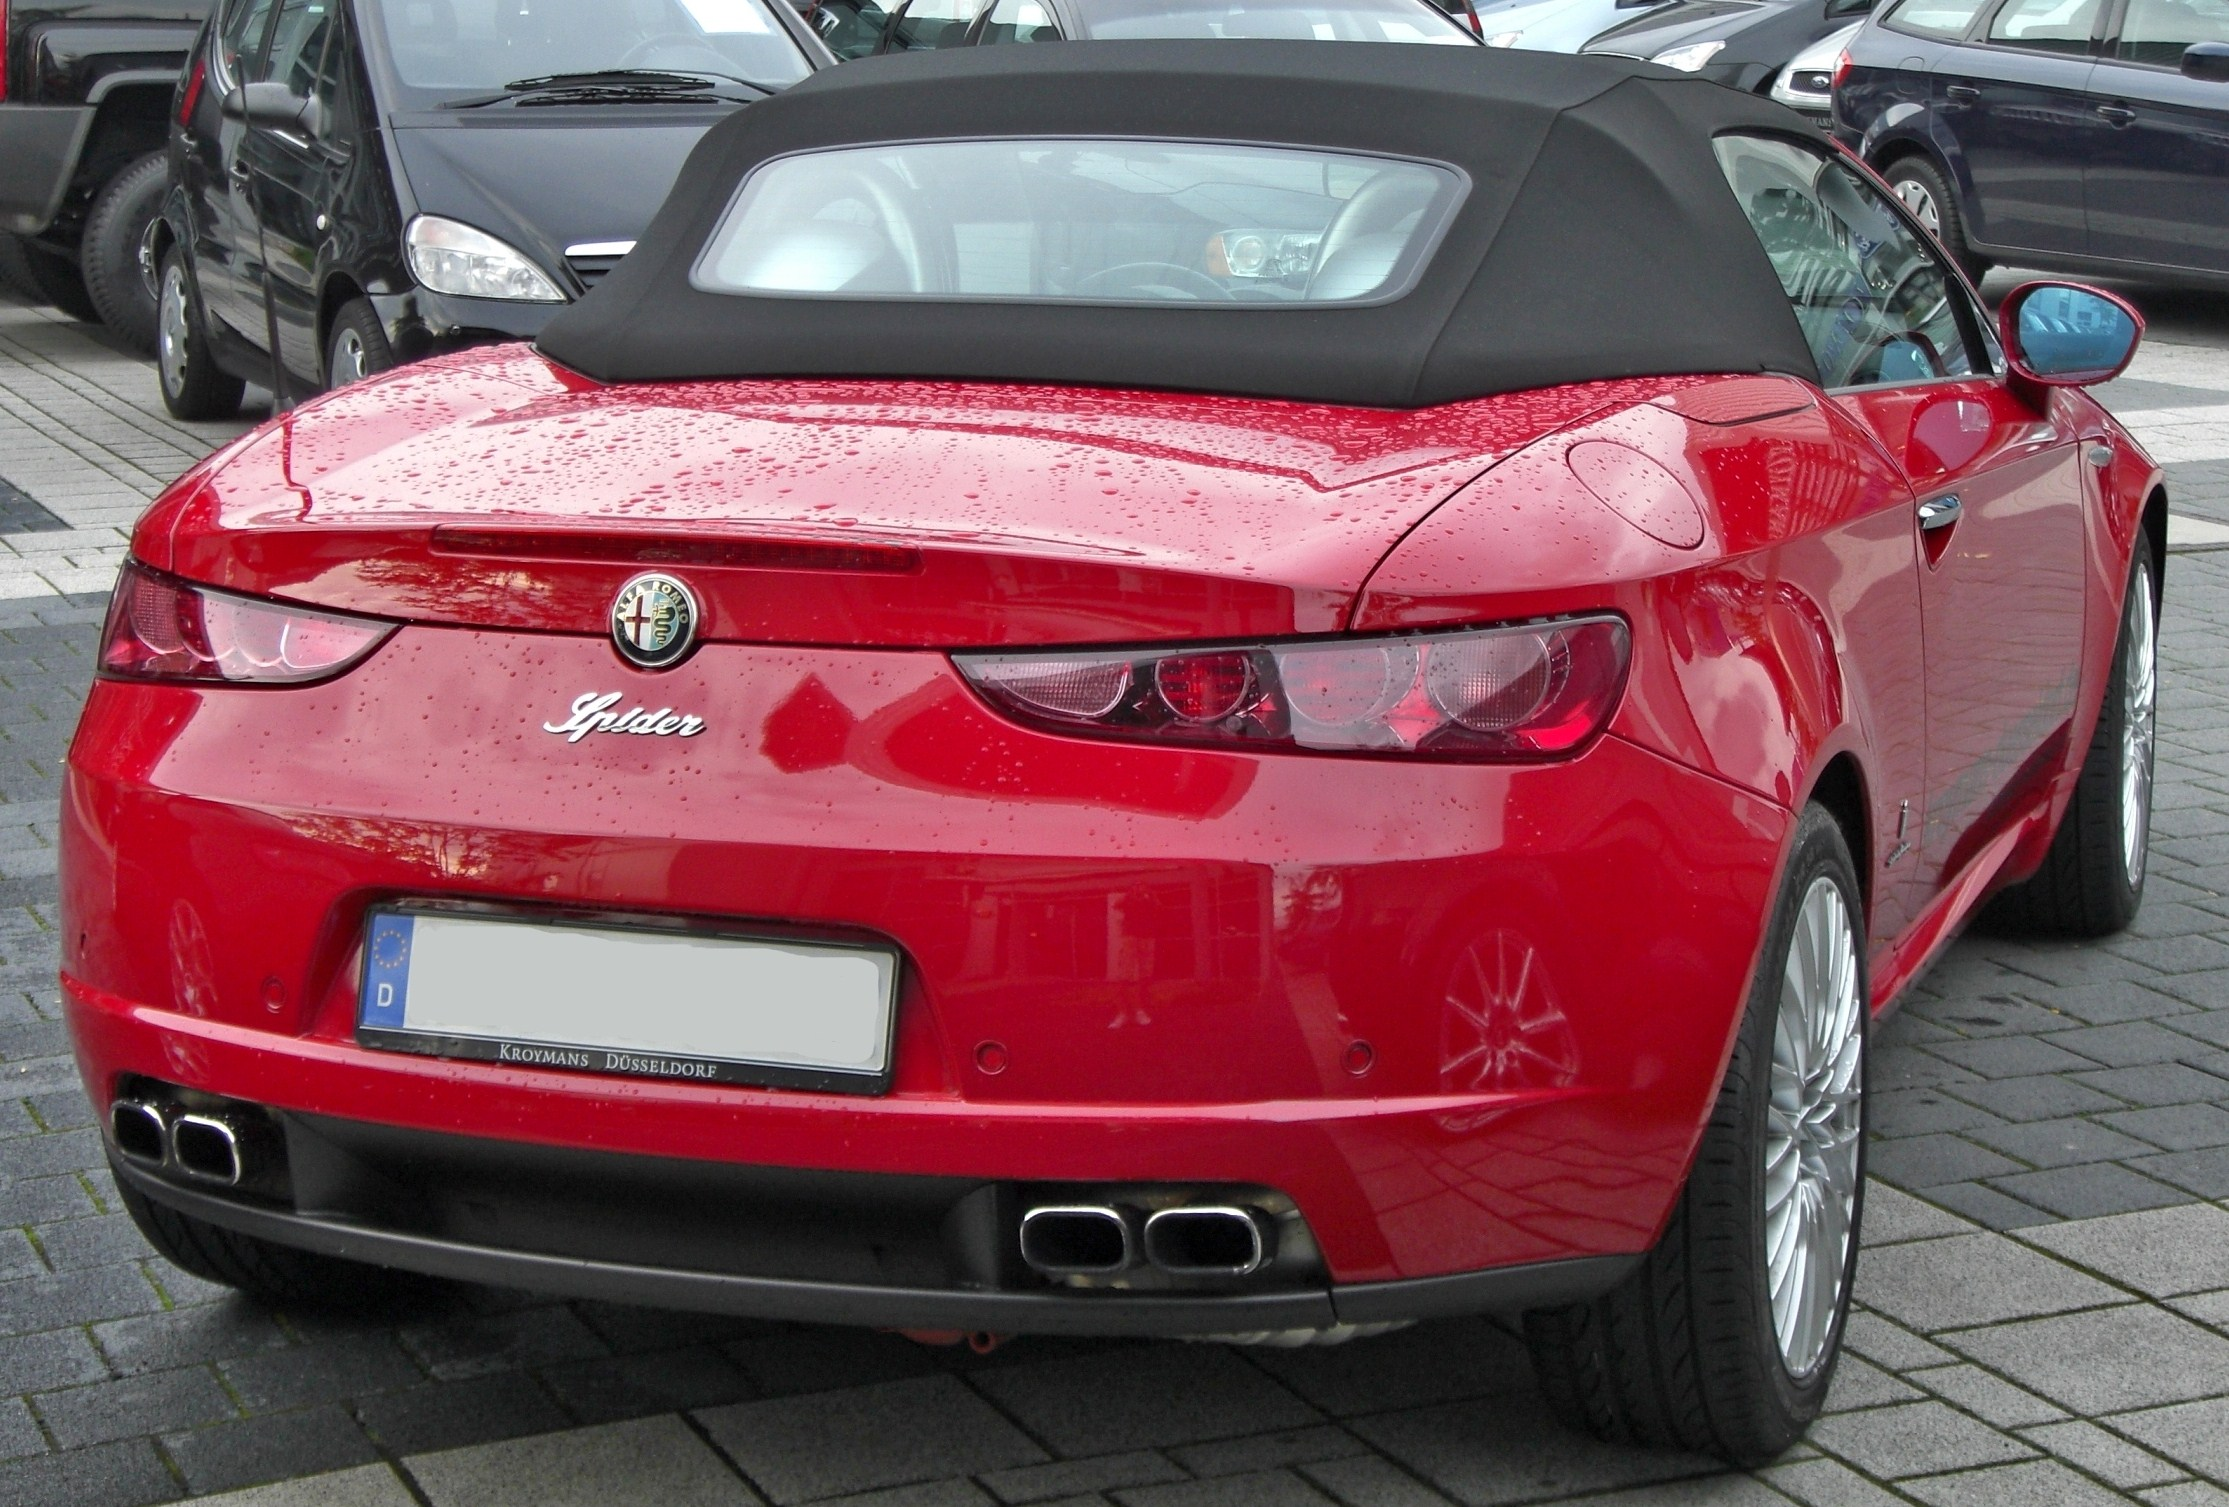 File:Alfa Romeo Spider rear-1.JPG - Wikimedia Commons